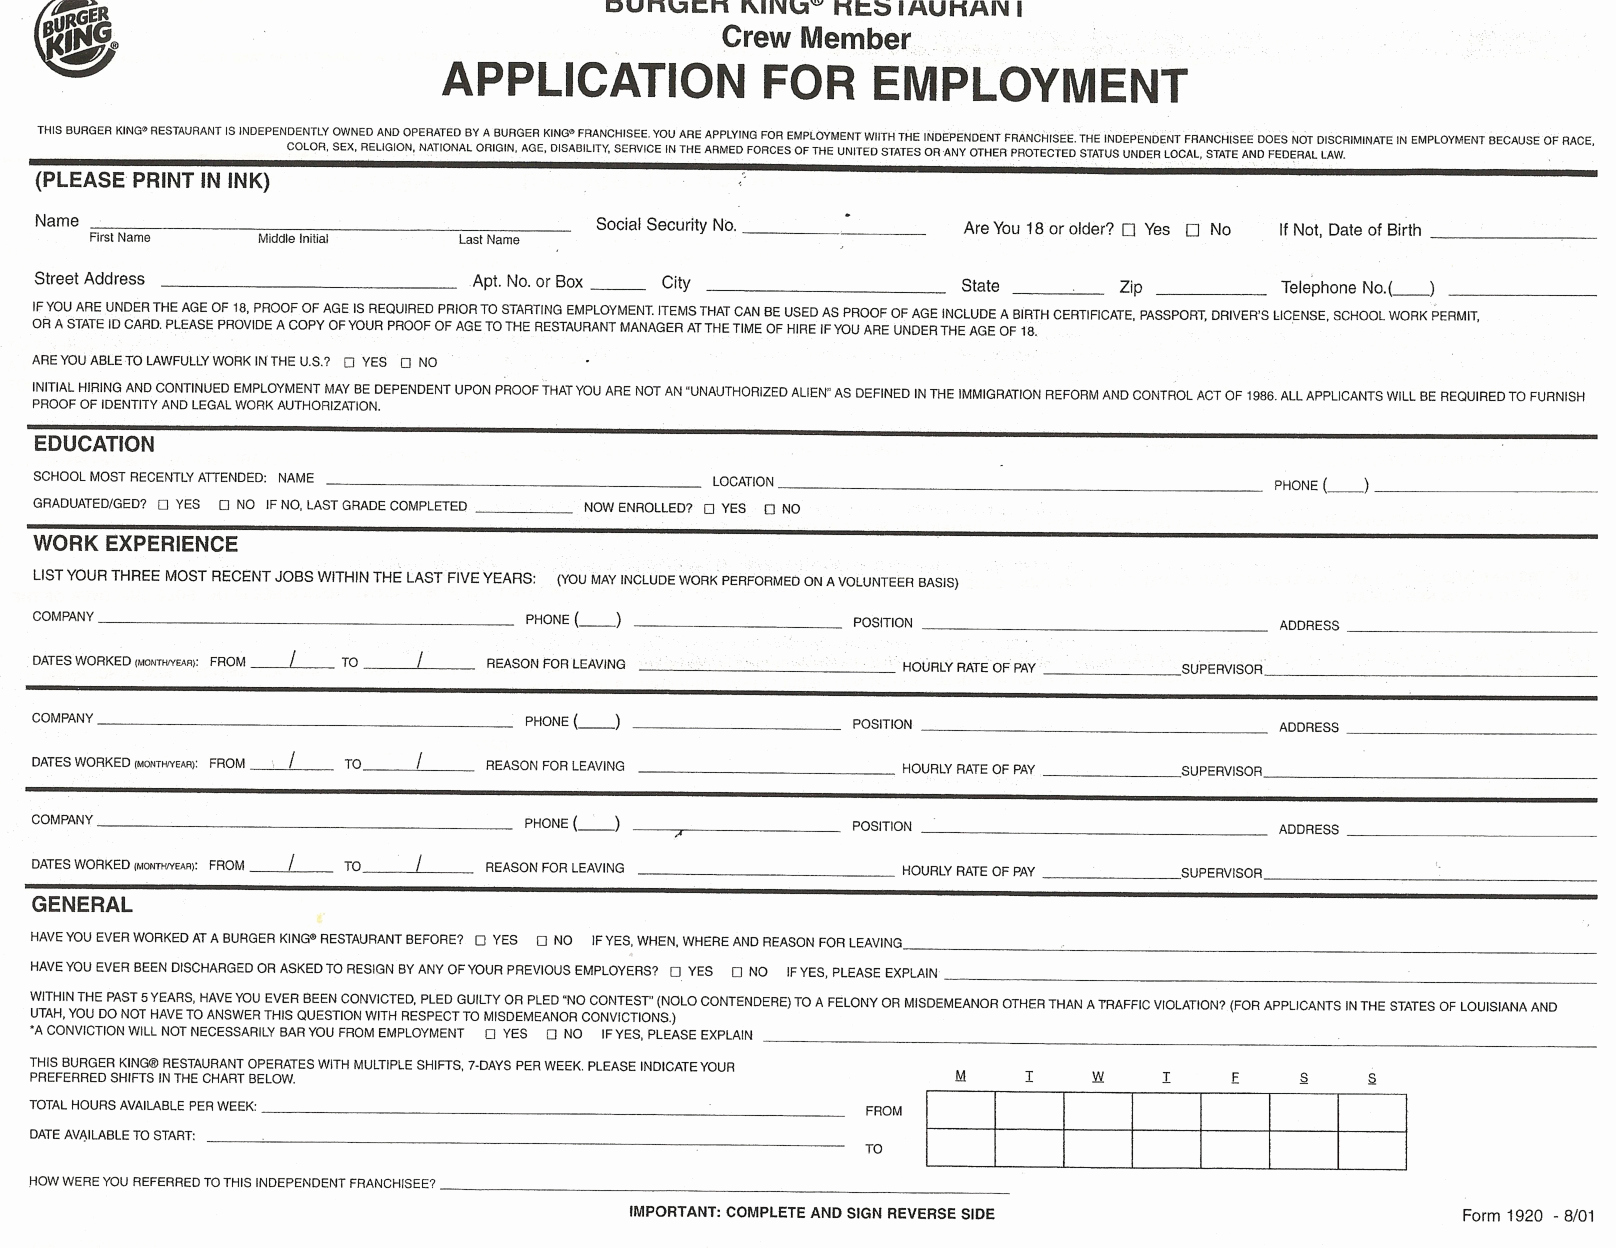 Free Printable Job Application New Job Application forms to Print